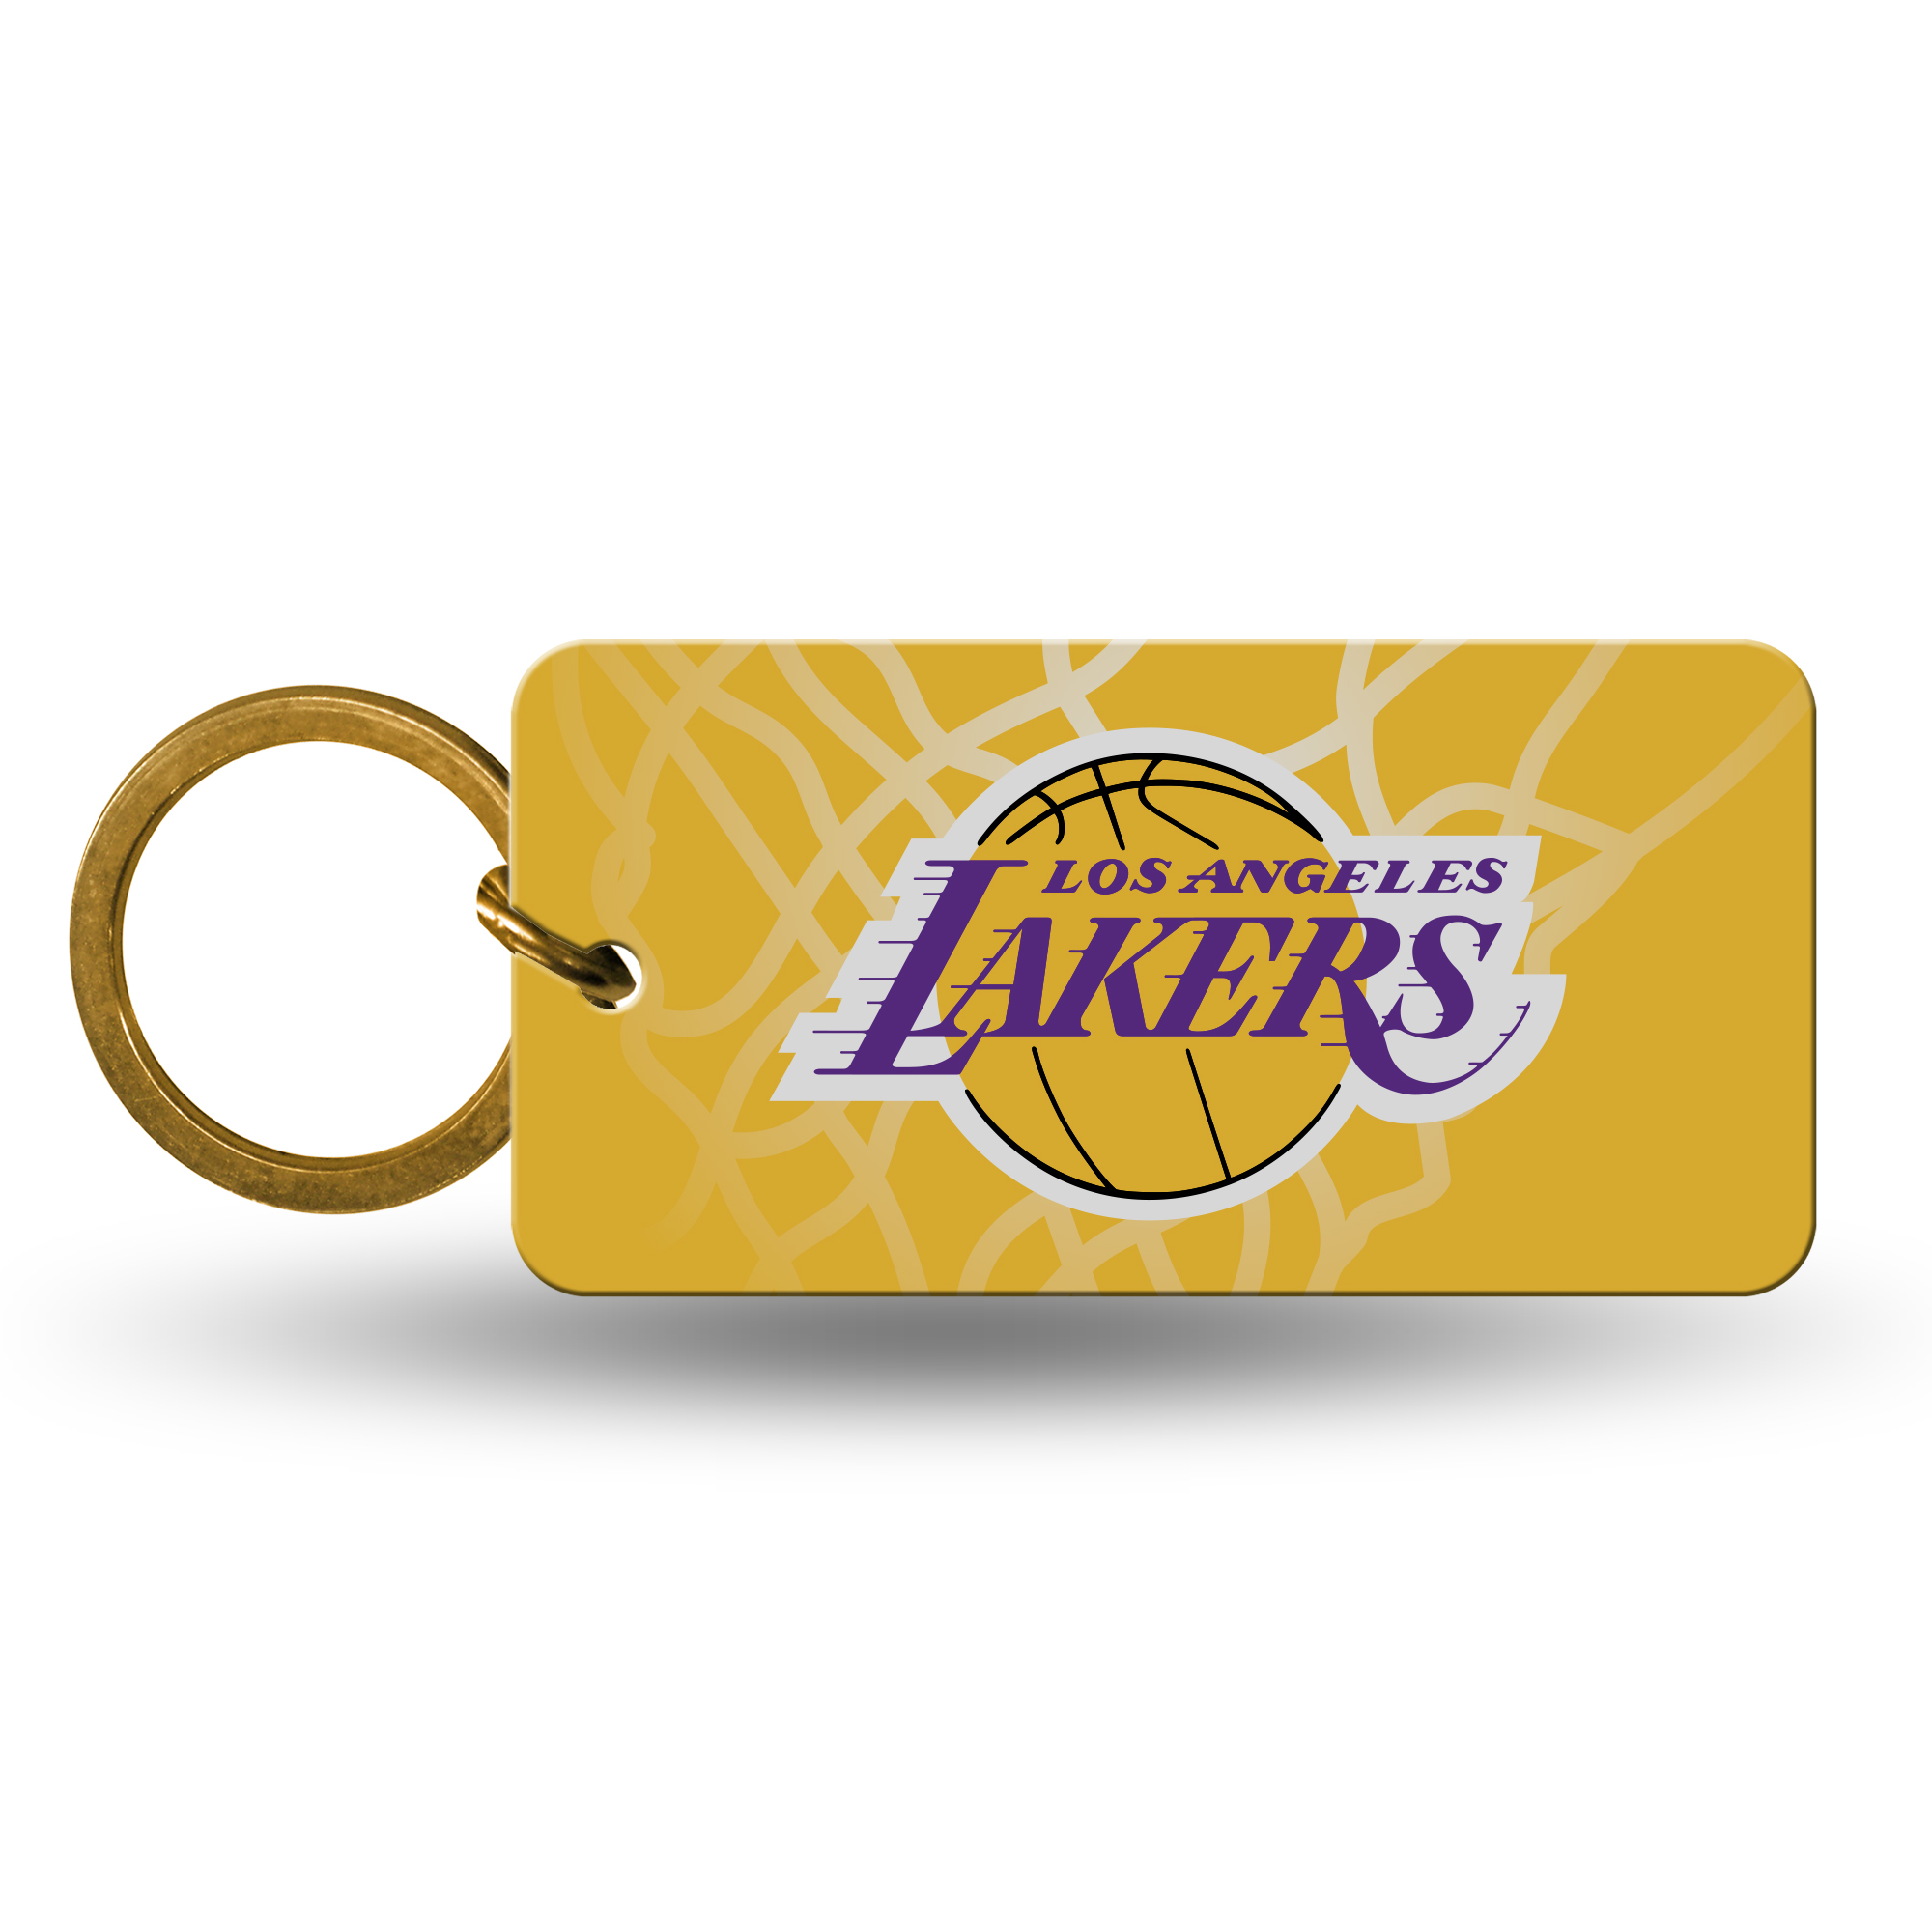 Los Angeles Lakers Official NBA 2 inch  Crystal View Key Chain Keychain by Rico Industries